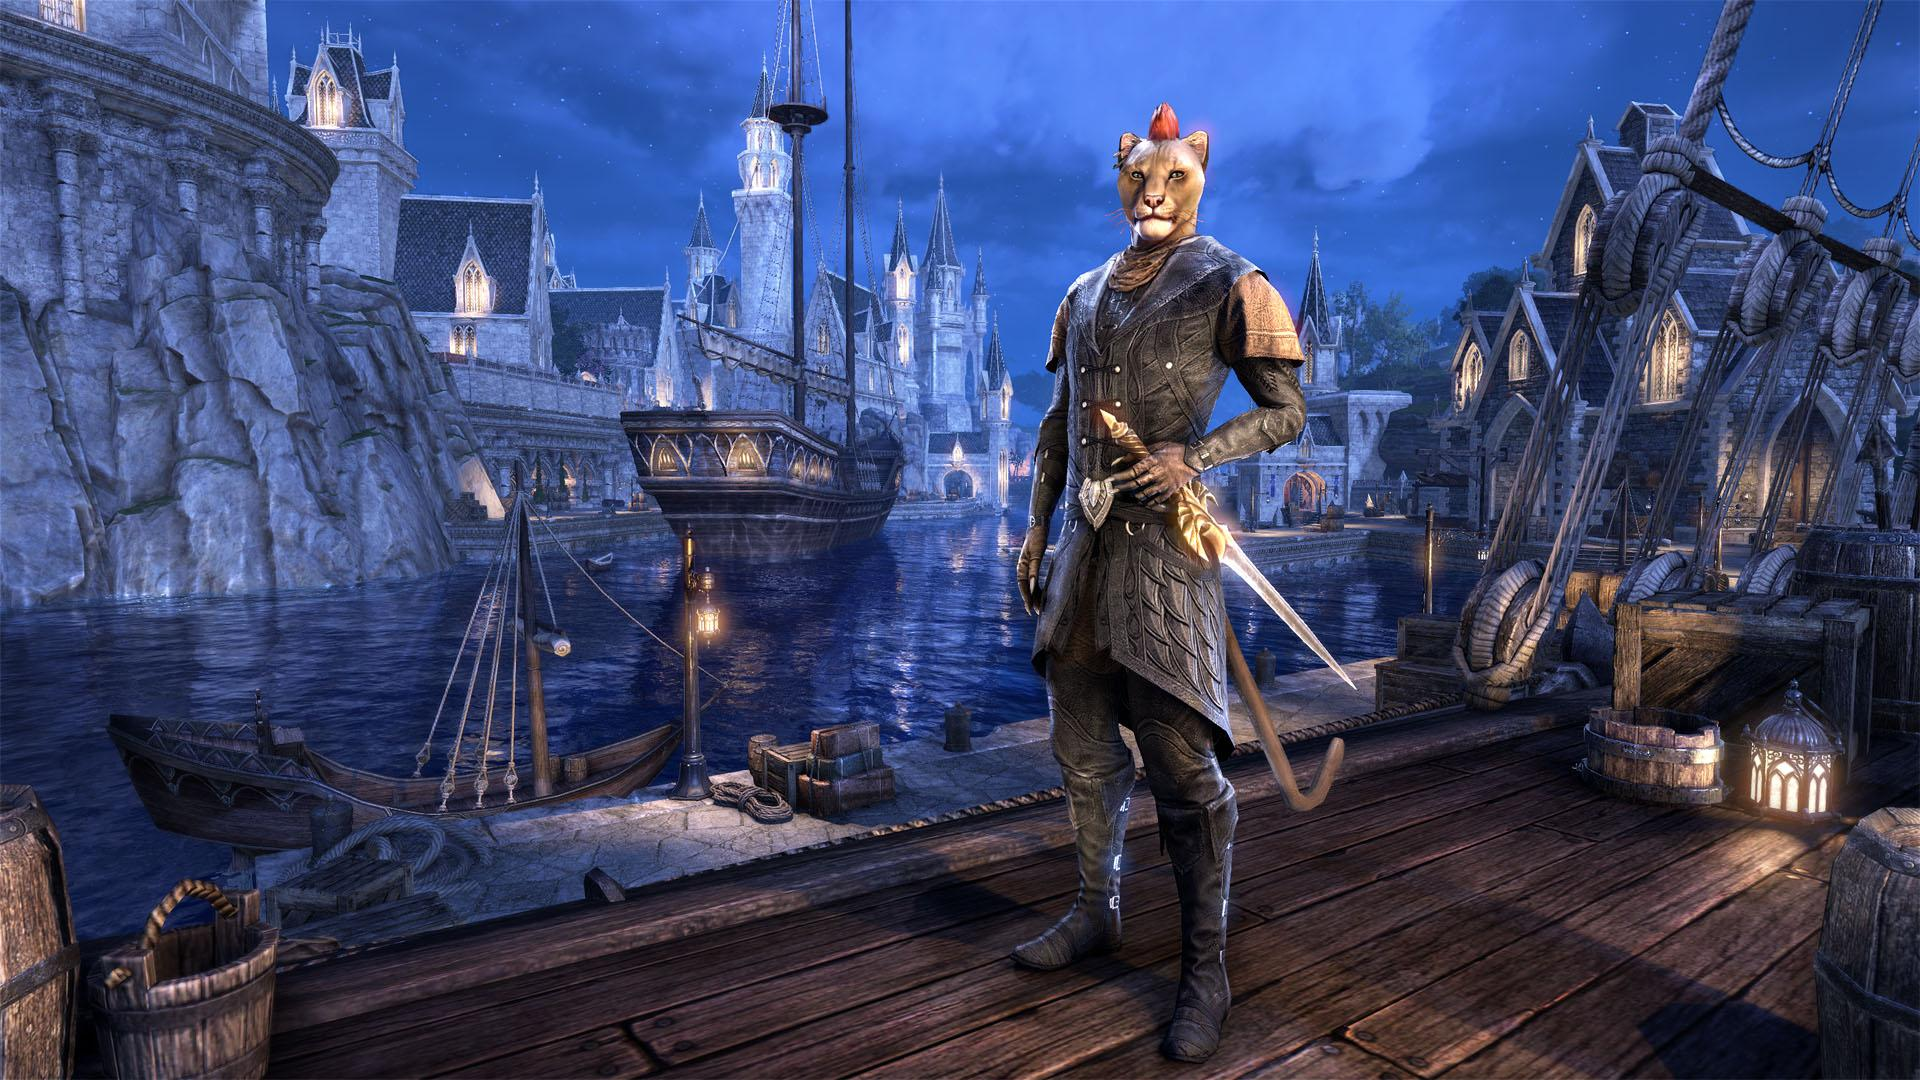 Elder Scrolls Online's Next Chapter Is Set in Elsweyr, Will Feature